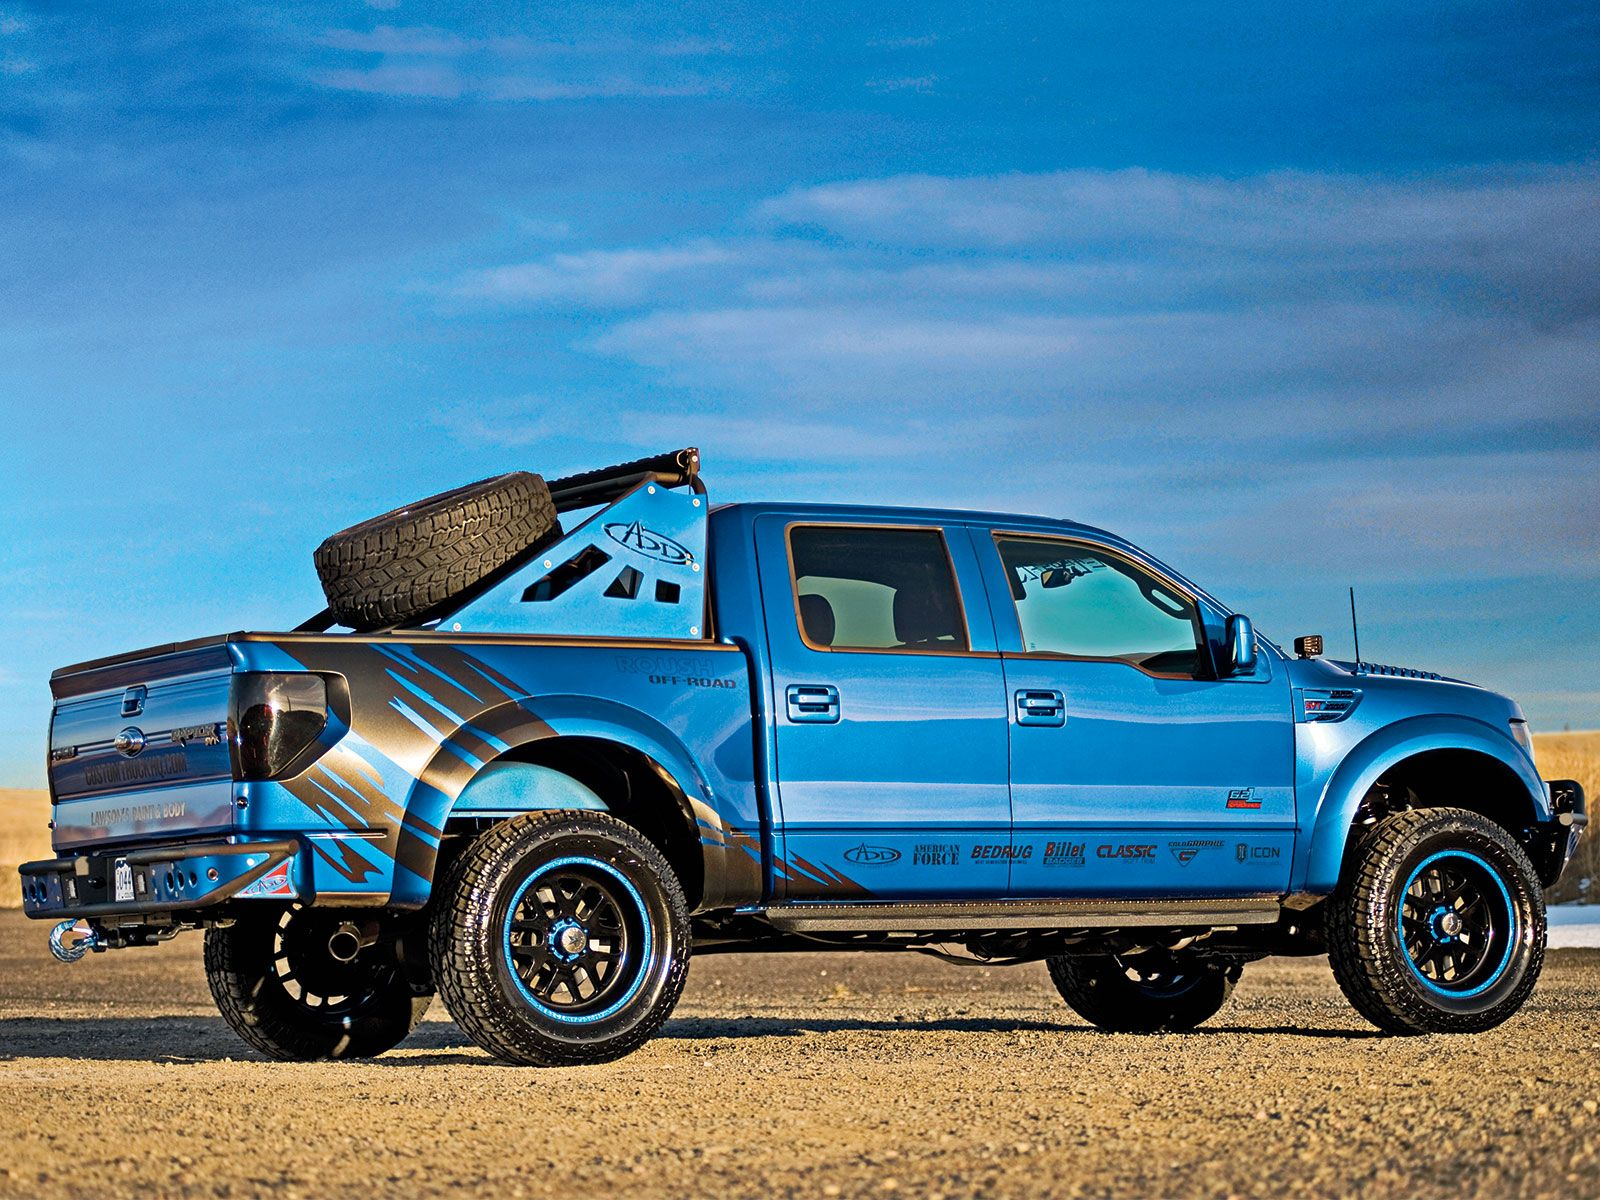 1000 images about raptors on pinterest ford ranger lift kits and vehicles - 2015 Ford F150 Raptor